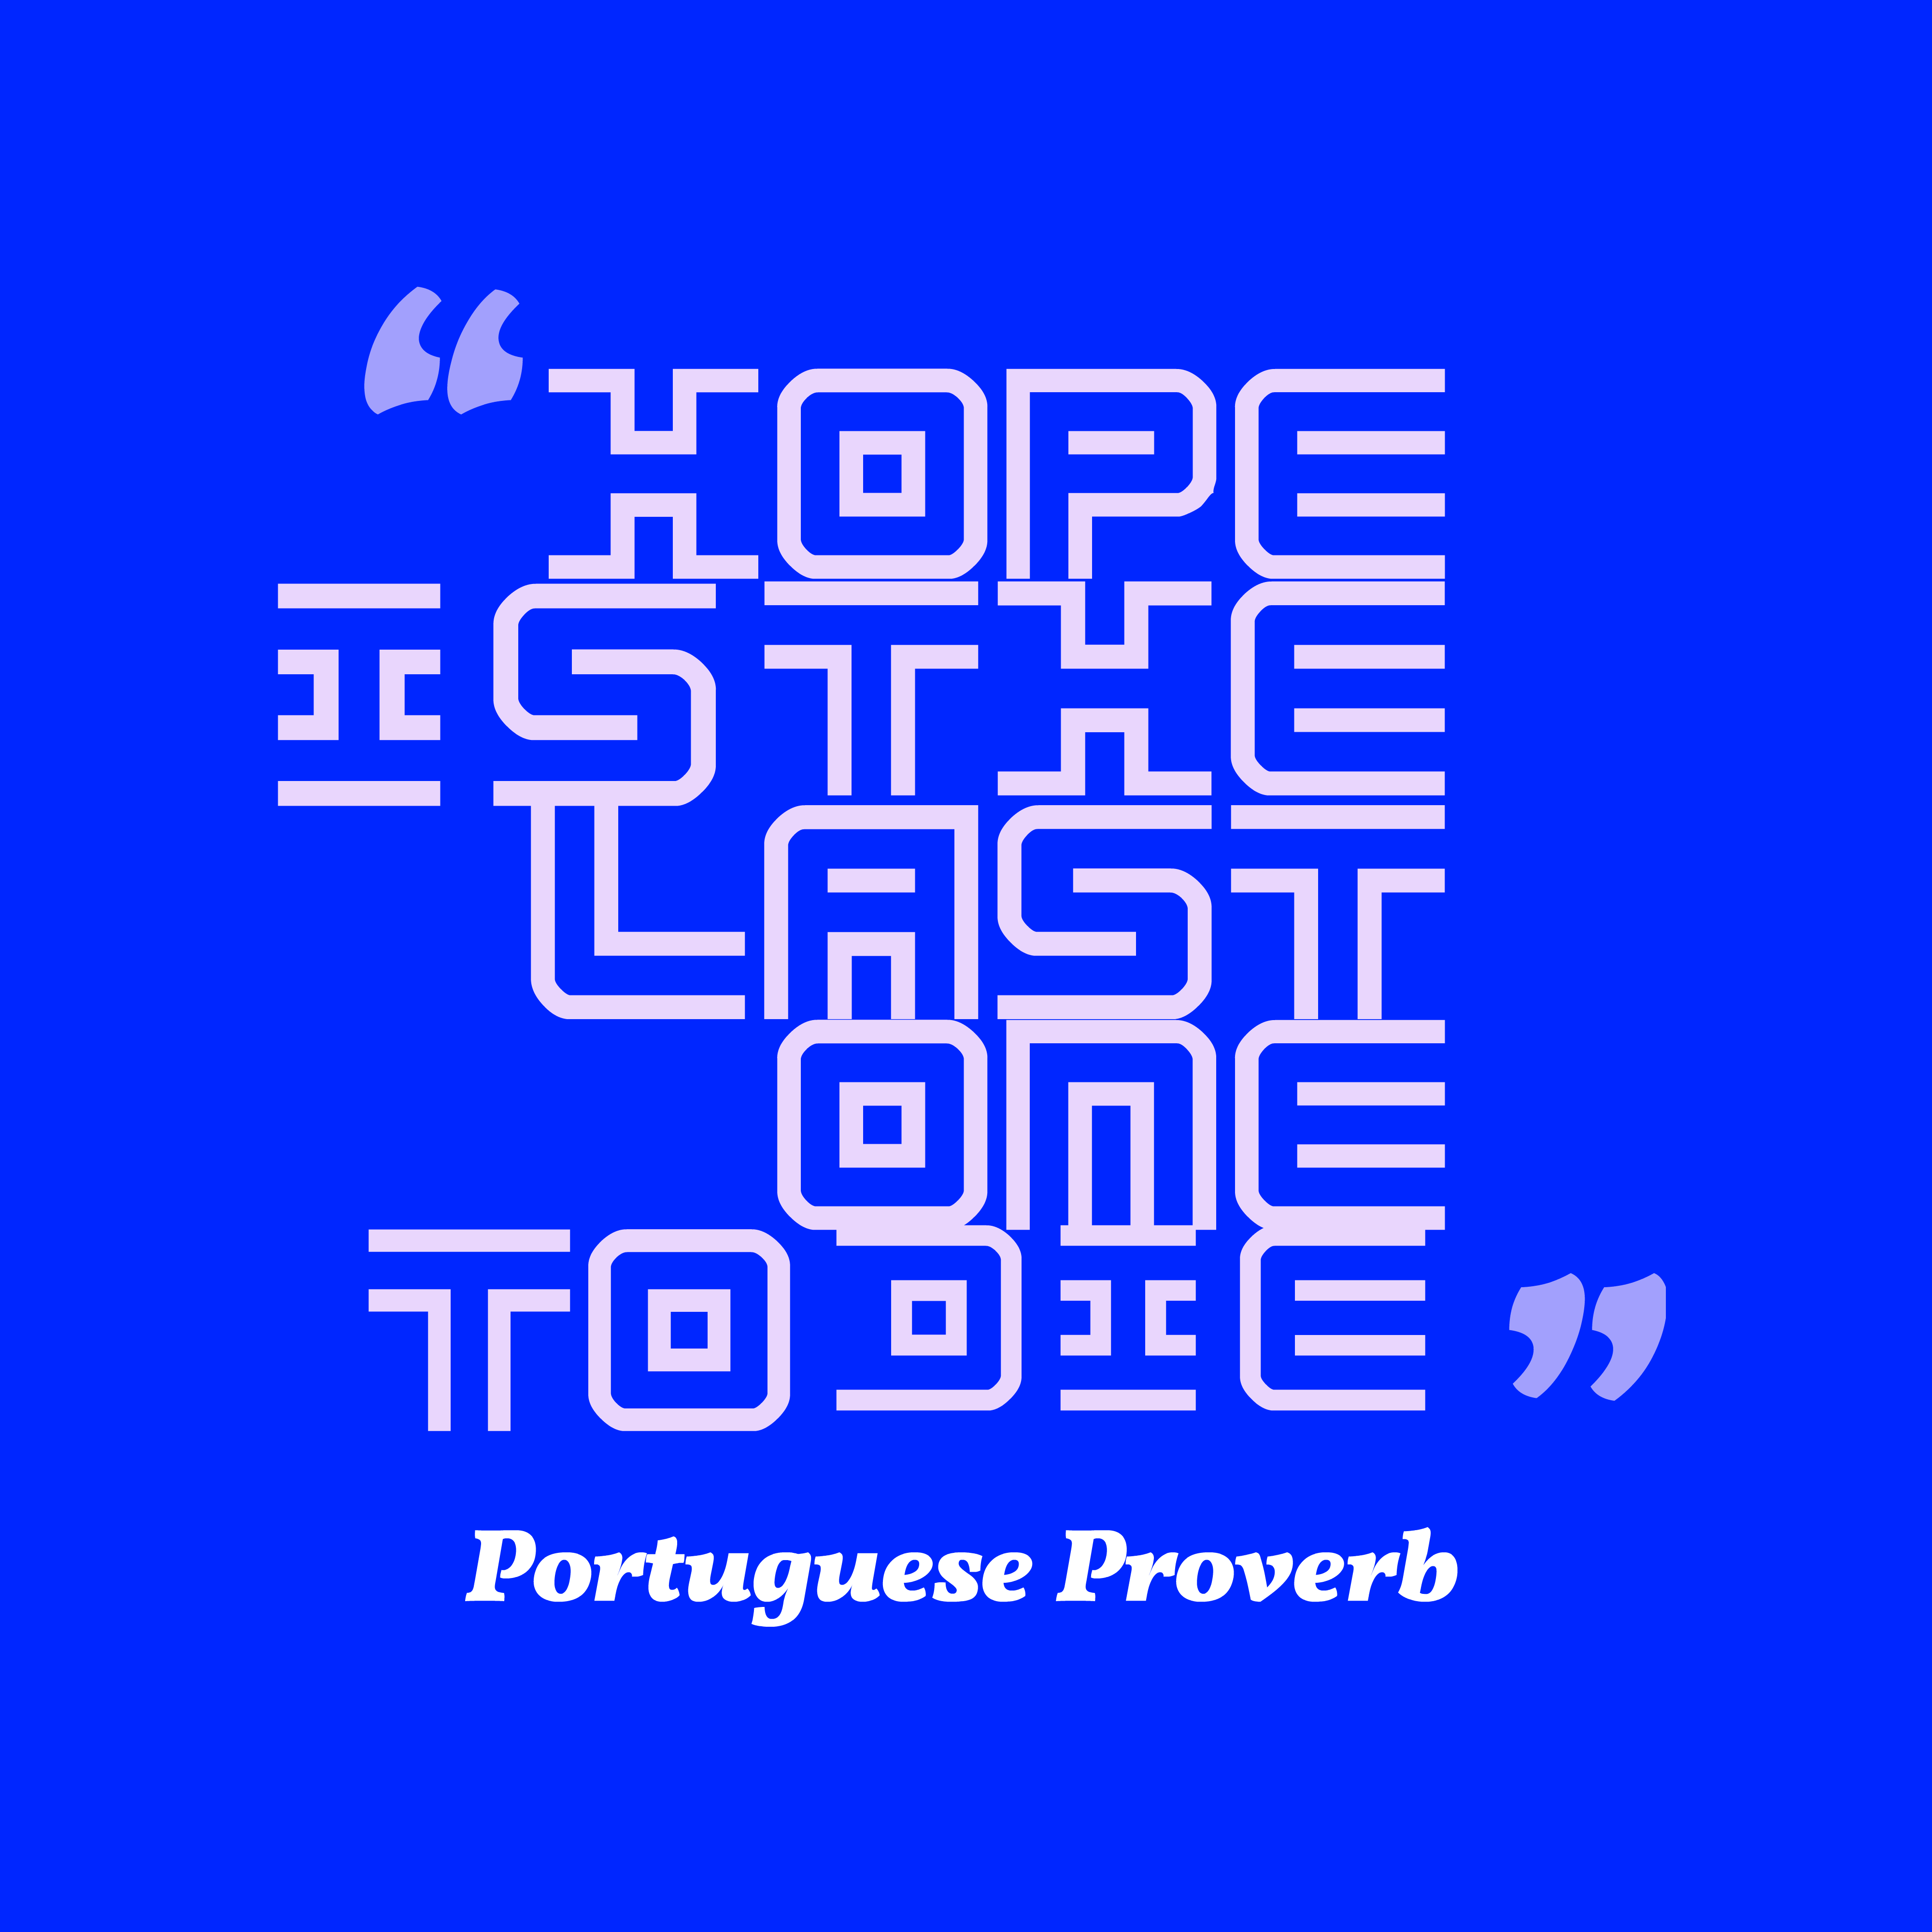 Quotes image of Hope is the last one to die.